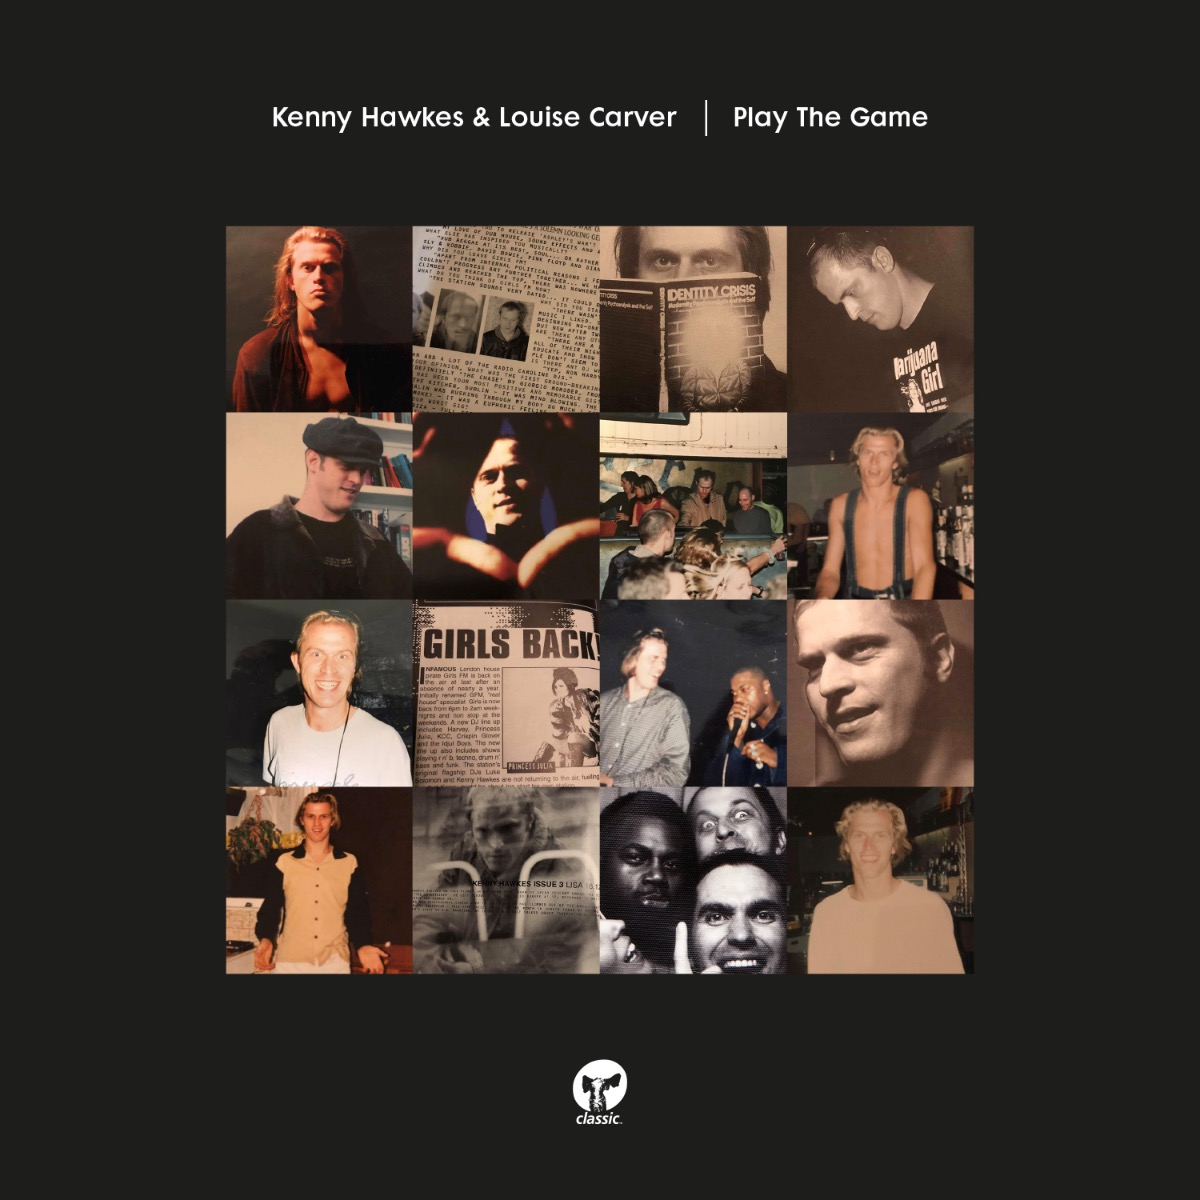 Kenny Hawkes & Louise Carver - Play The Game